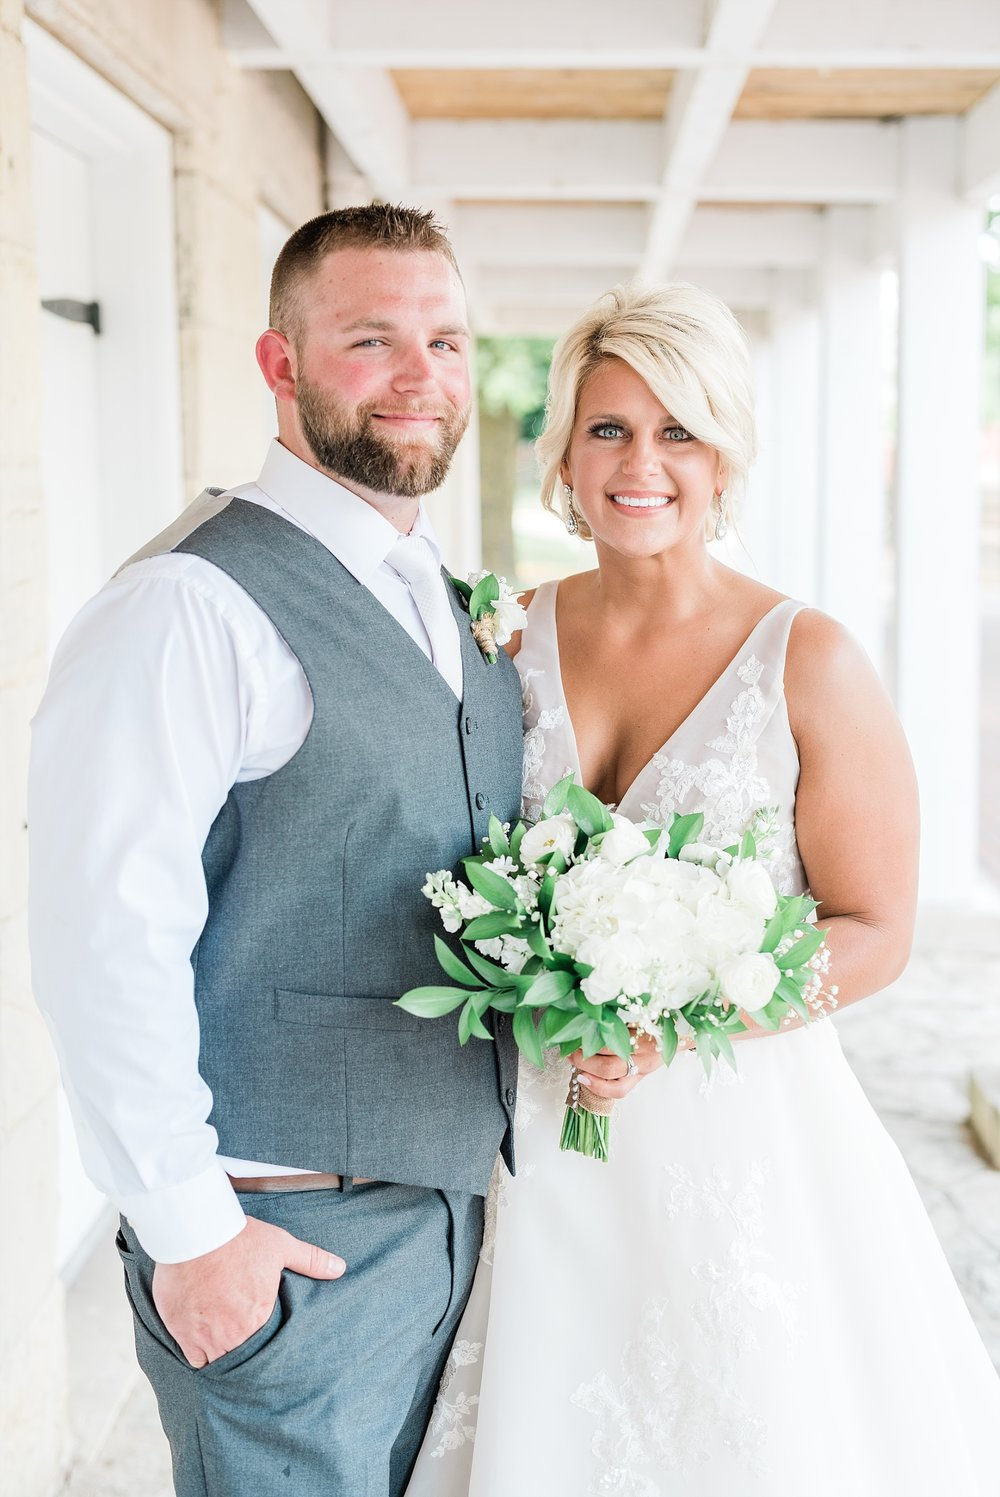 Rose Gold, White, and Greenery High Class Summer Wedding at The Millbottom in Downtown Jefferson City by Kelsi Kliethermes Photography_0026.jpg